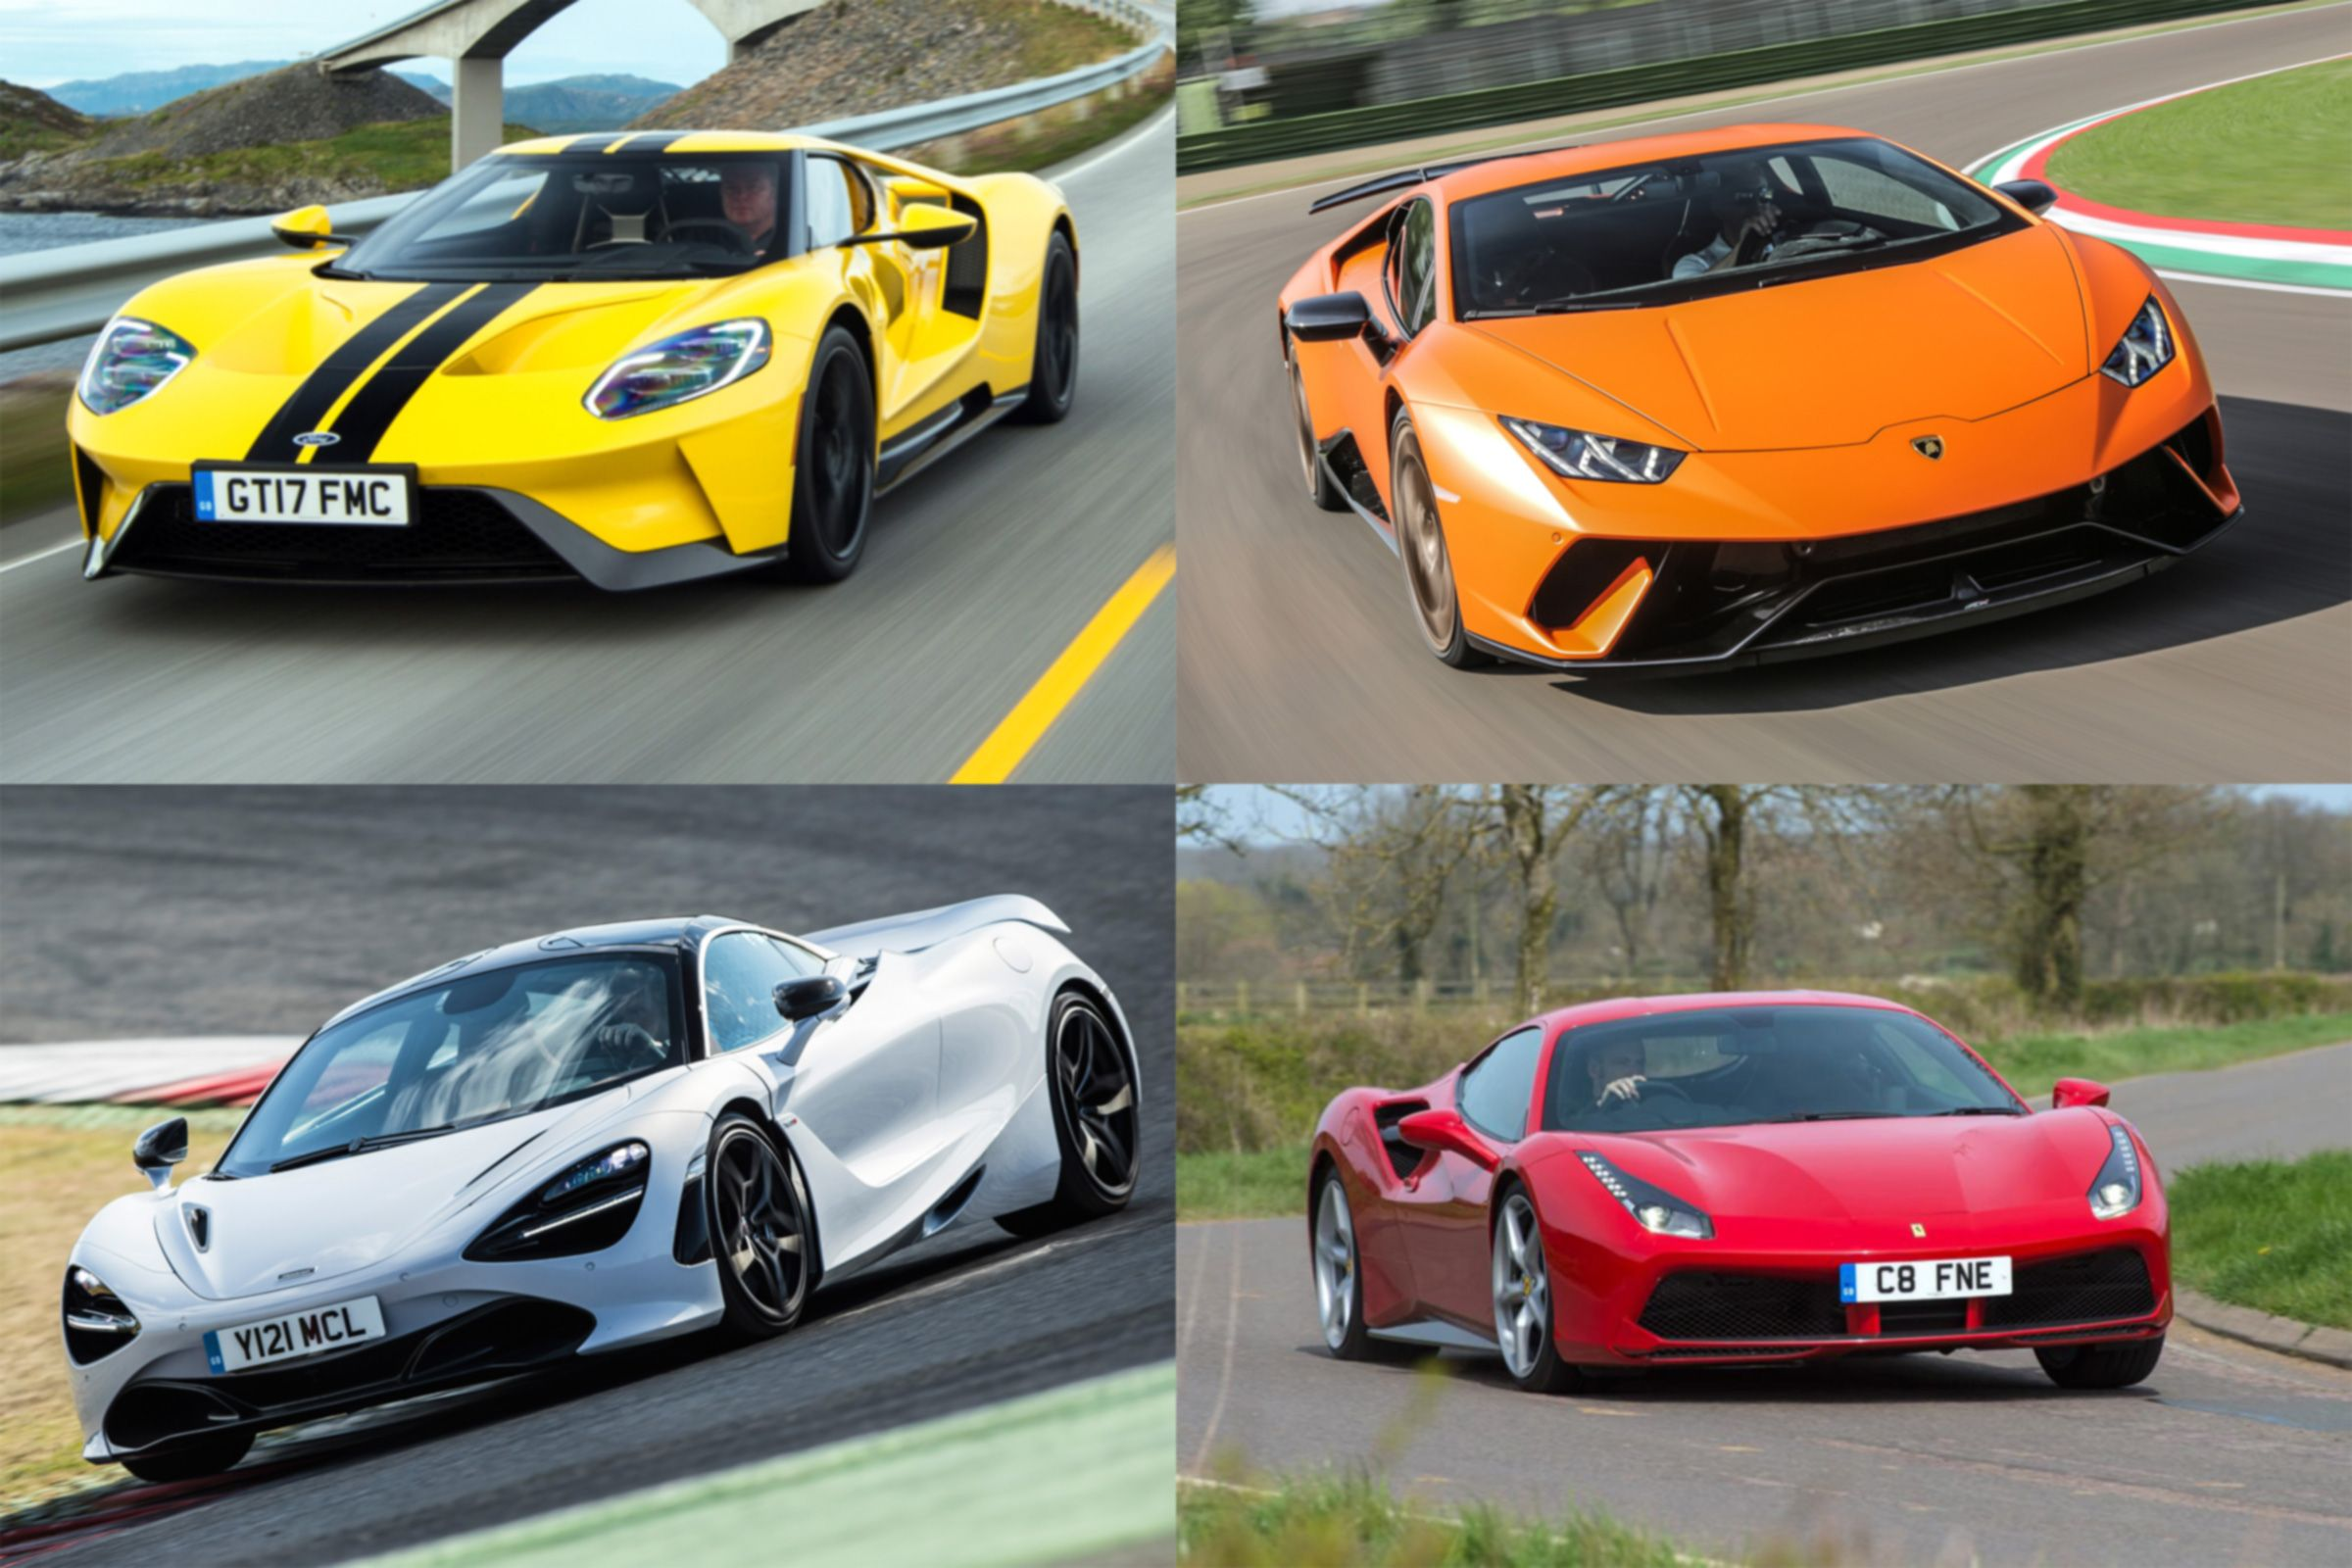 Top 10 Sports Cars For 2019 With Images Super Cars